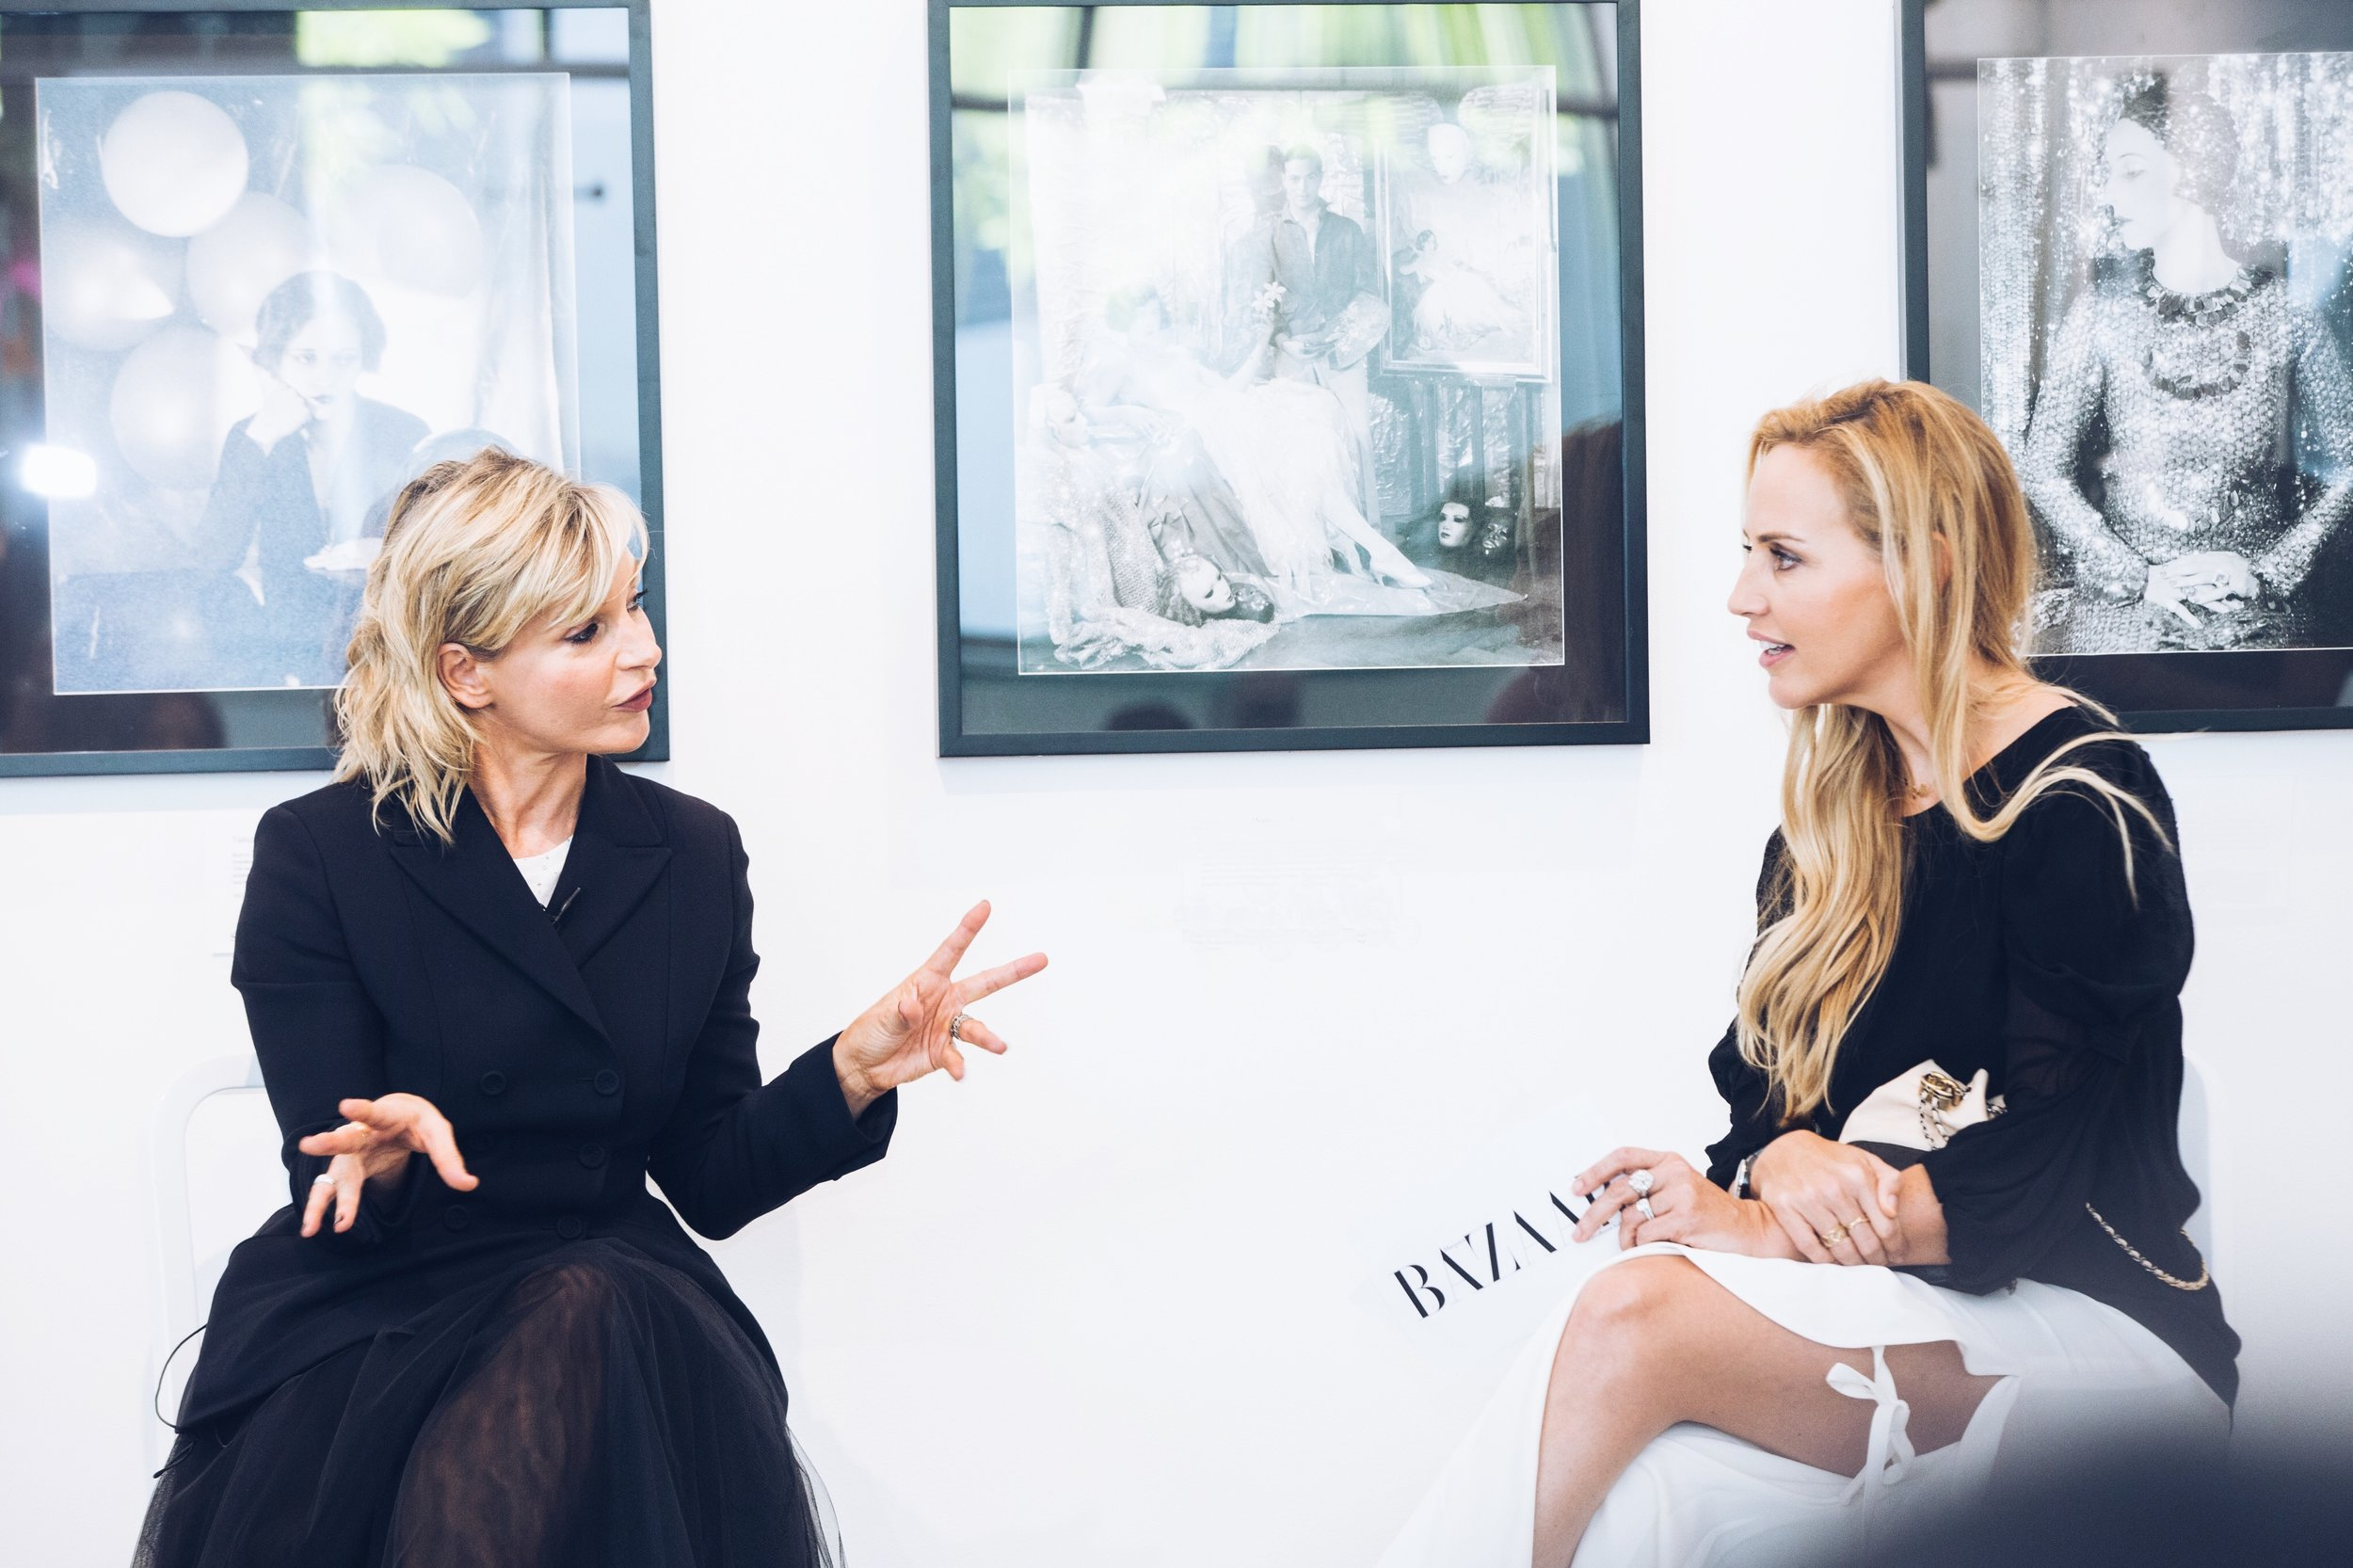 Kurt Geiger's Rebecca Farrar-Hockley interview, Sothebys Dubai, May 2017